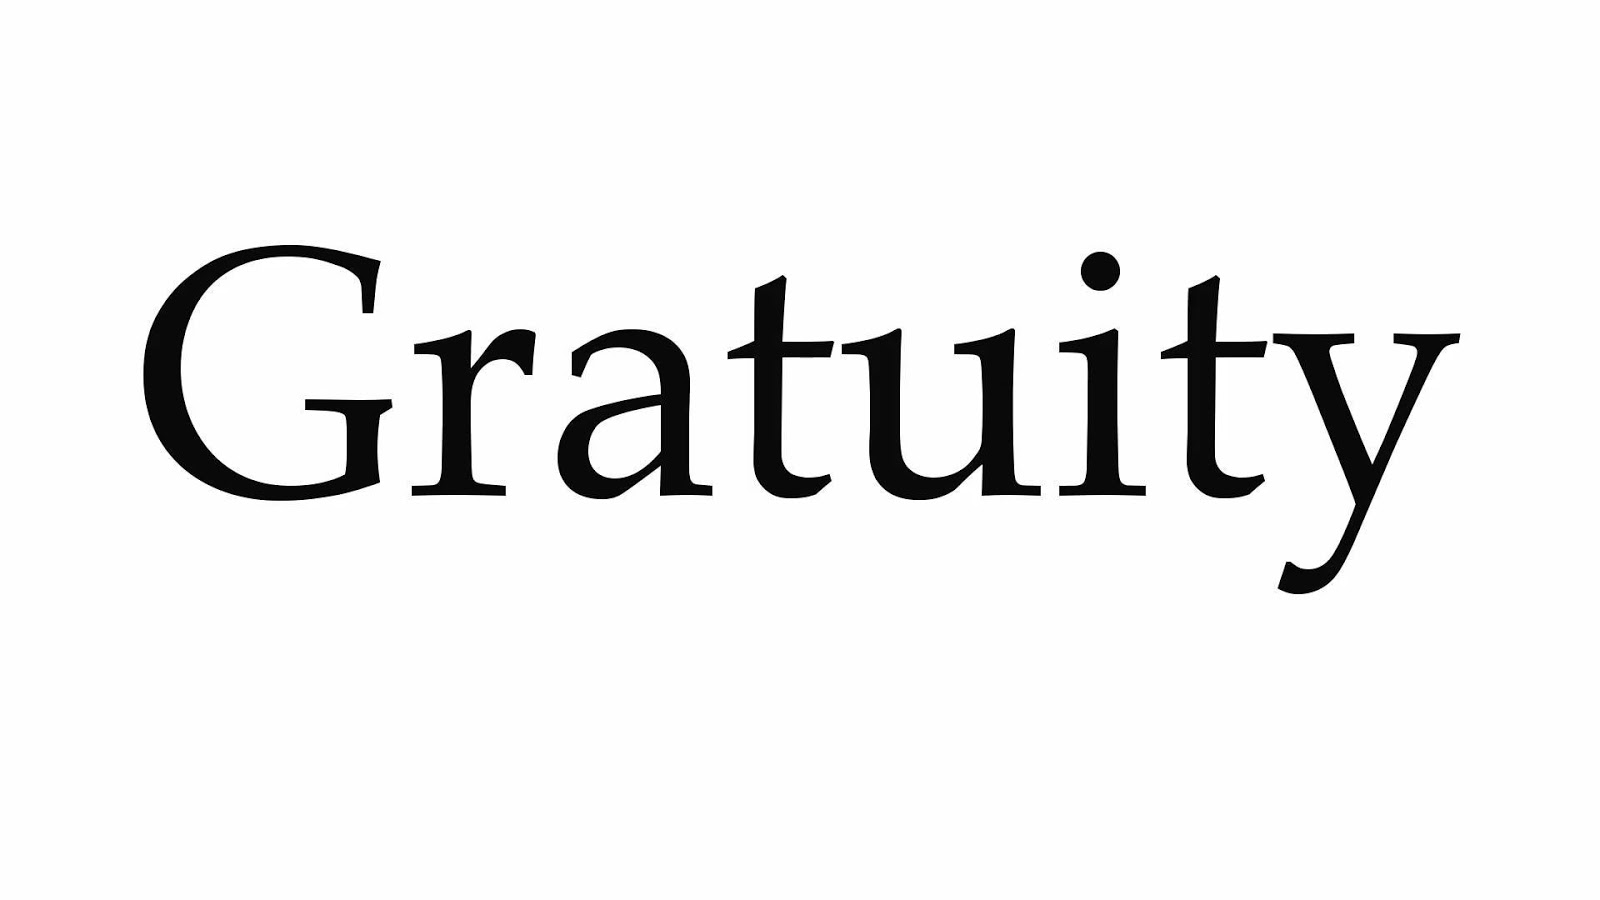 gratuity Gratuity solutions have solved the problem by developing a gratsync & gratshare 100% automated, enterprise-level time & gratuity management application by being efficient process automation.